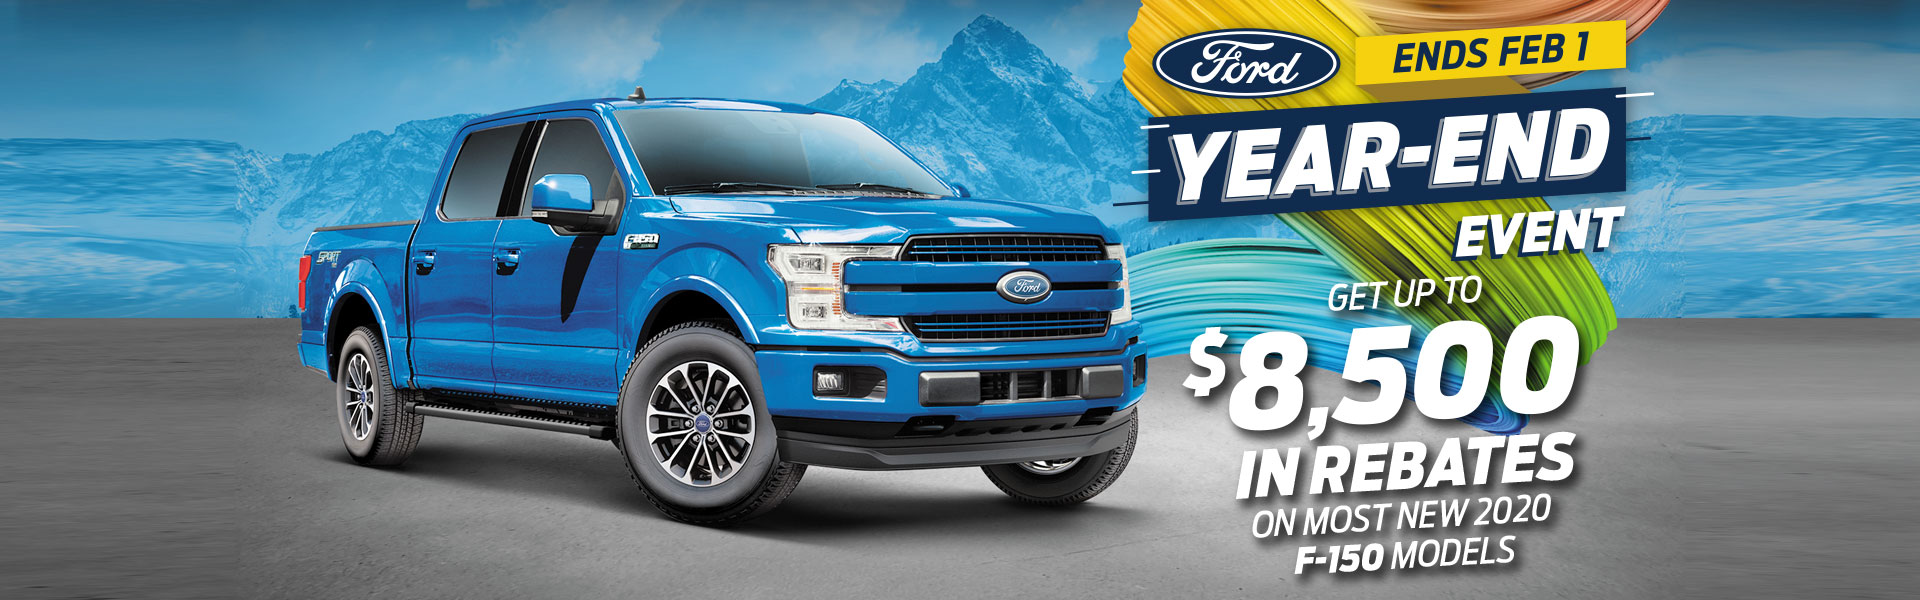 F-150 Ford Year End Event